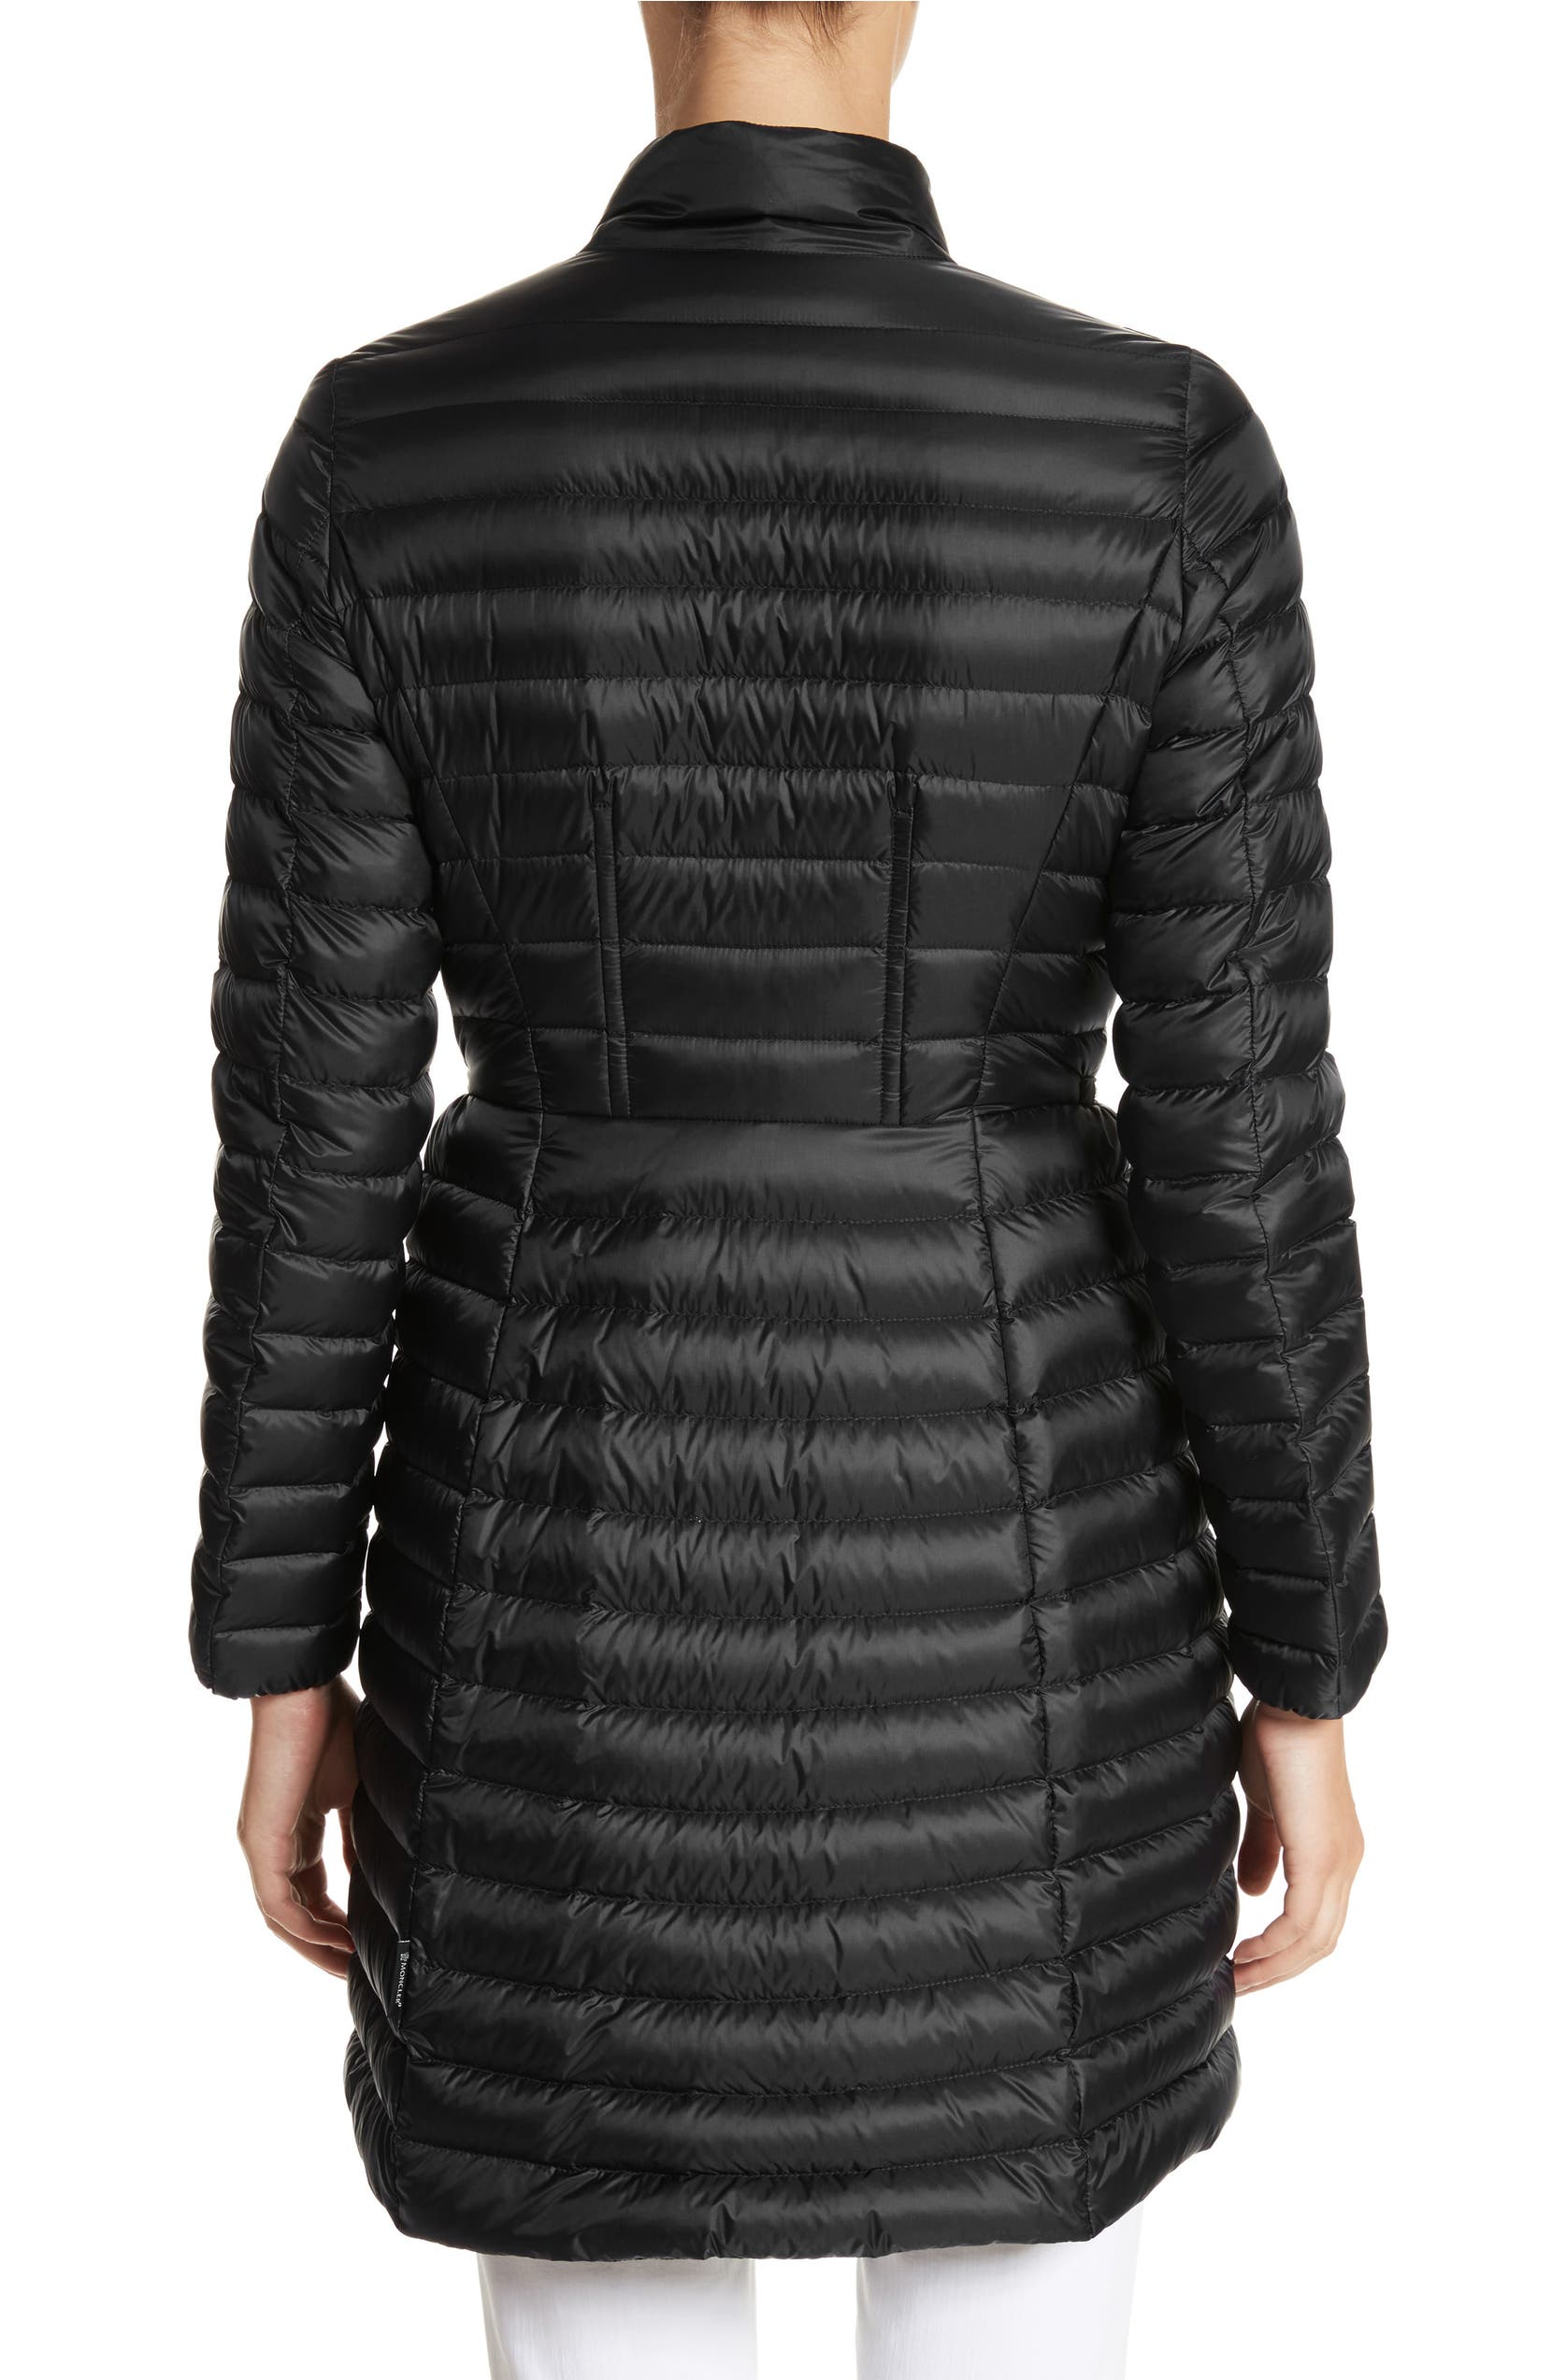 324df937e Agatelon Down Quilted Puffer Jacket